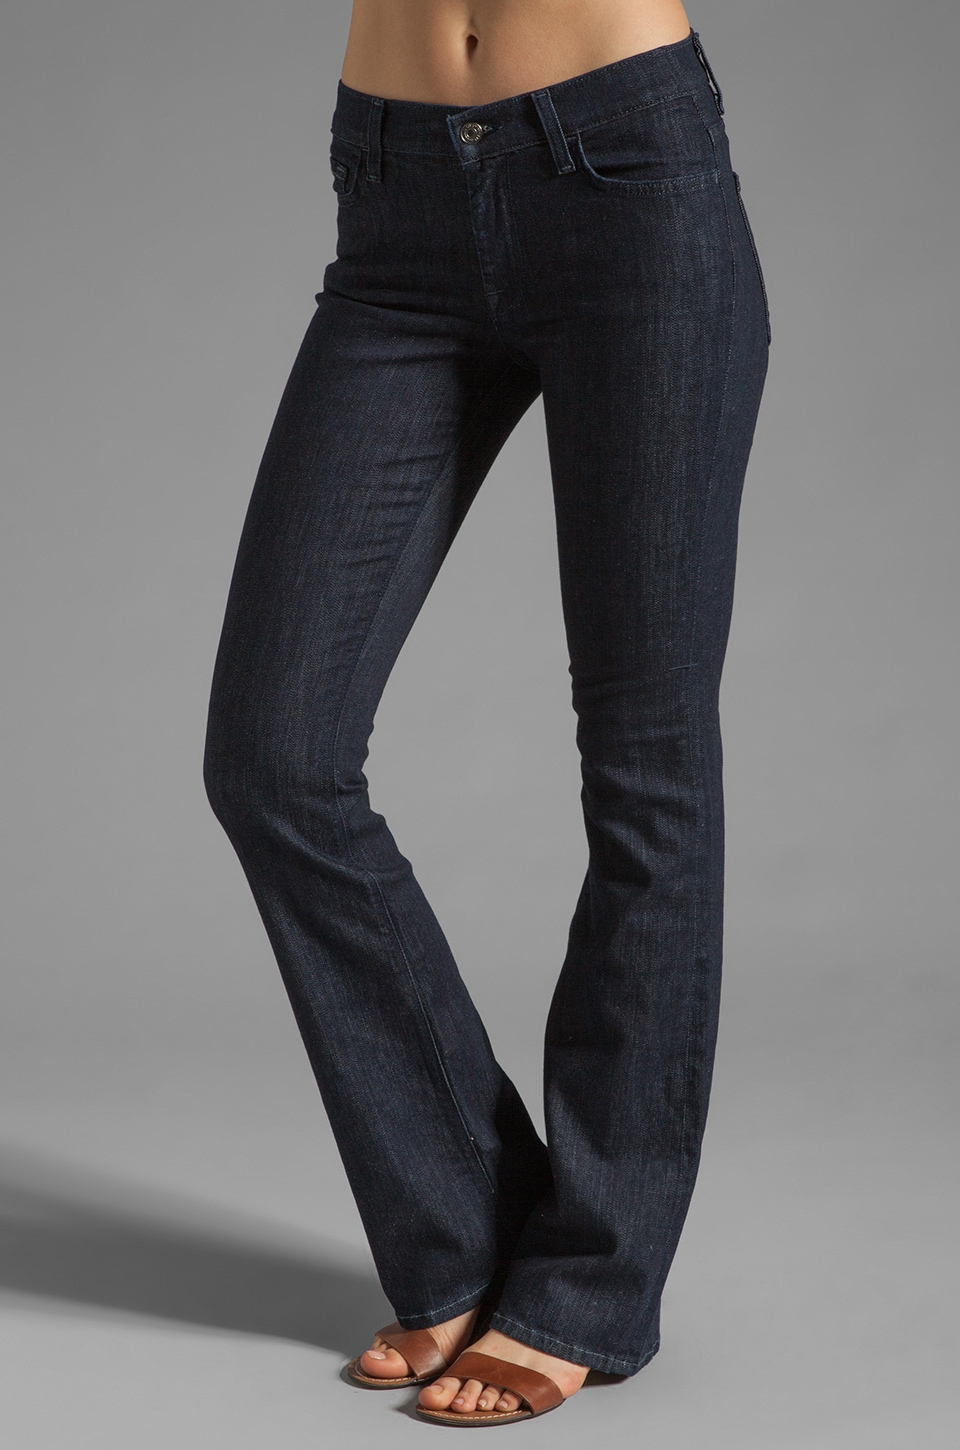 7 For All Mankind Mid-Rise Boot Cut in New Rinse